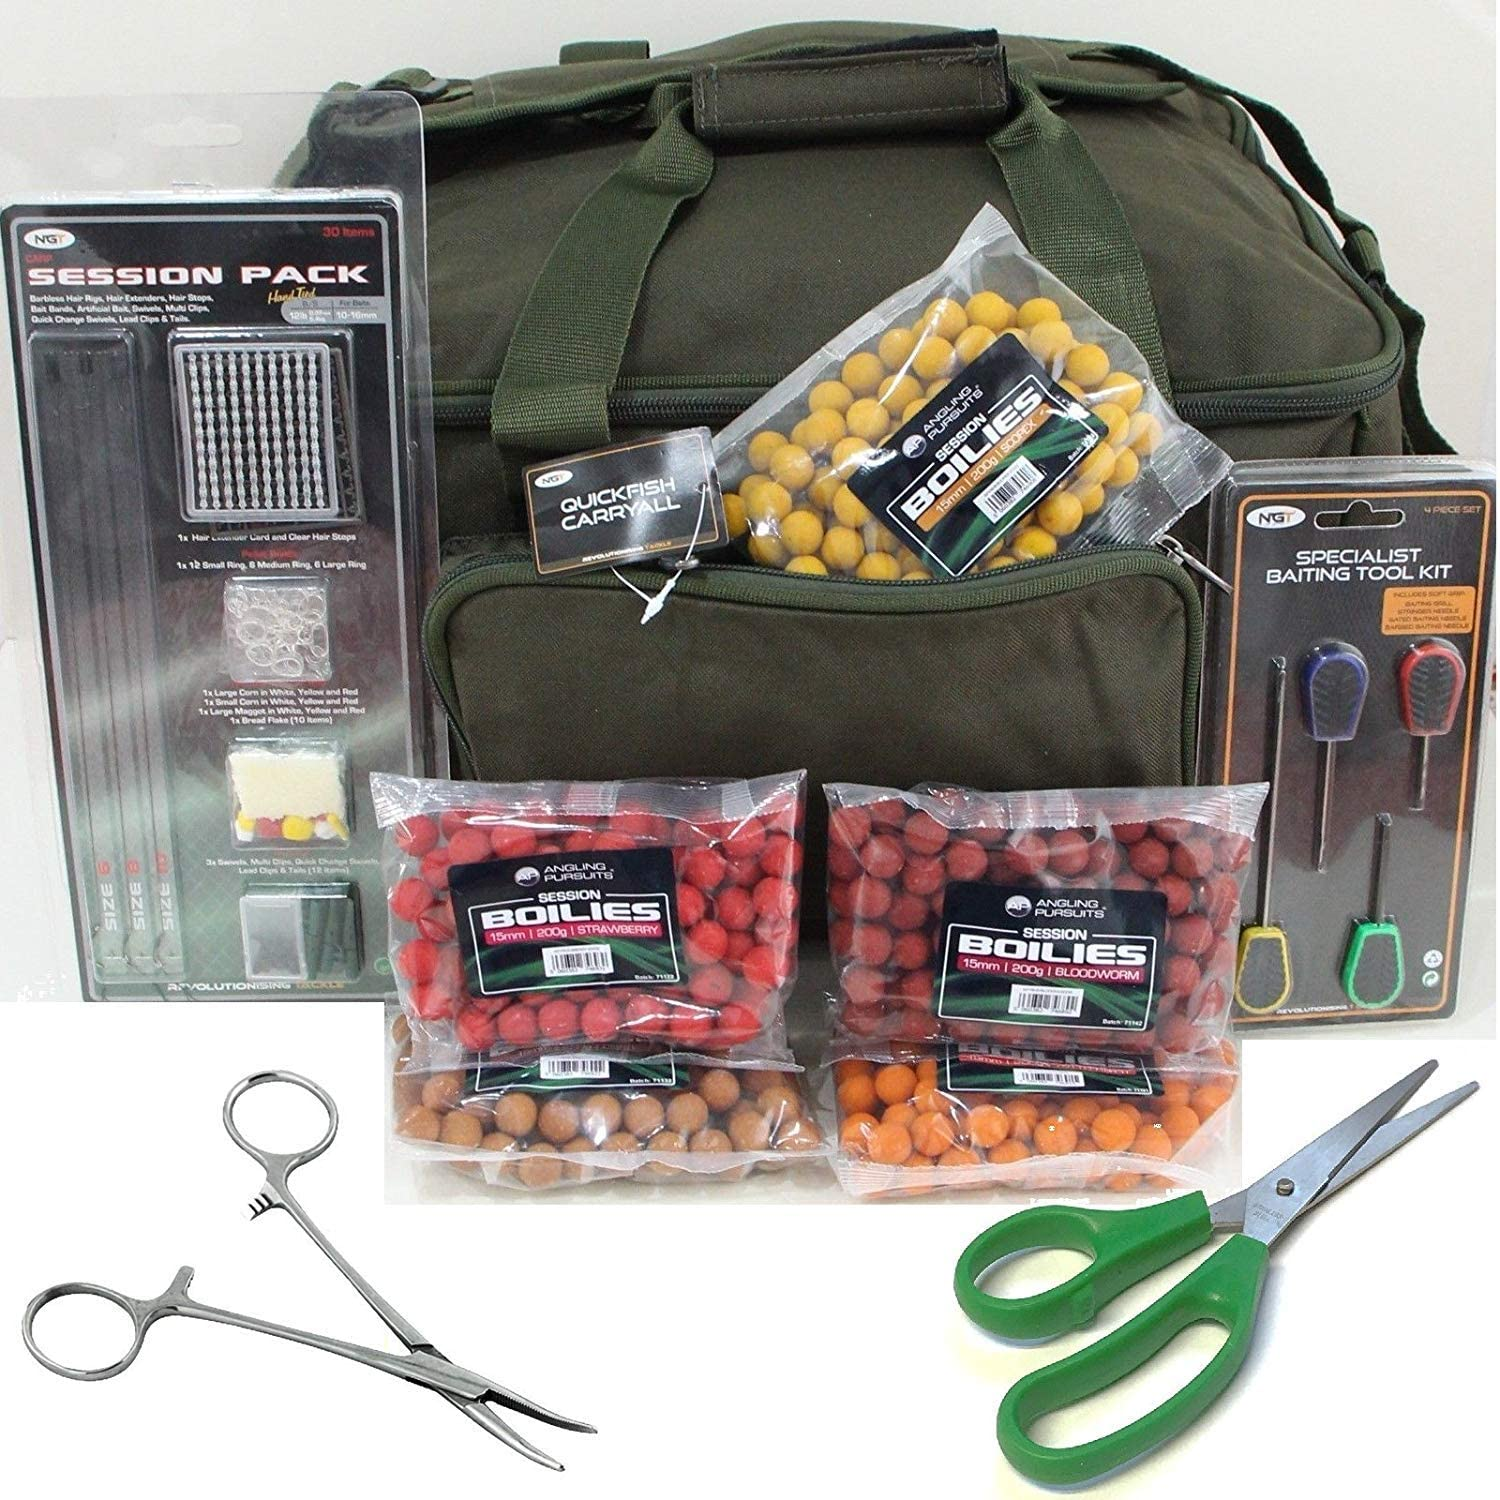 1 PACKET OF TUTTI-FRUITI BOILIES FROM ANGLING PURSUITS 200gr PACK 15mm BOLLIES